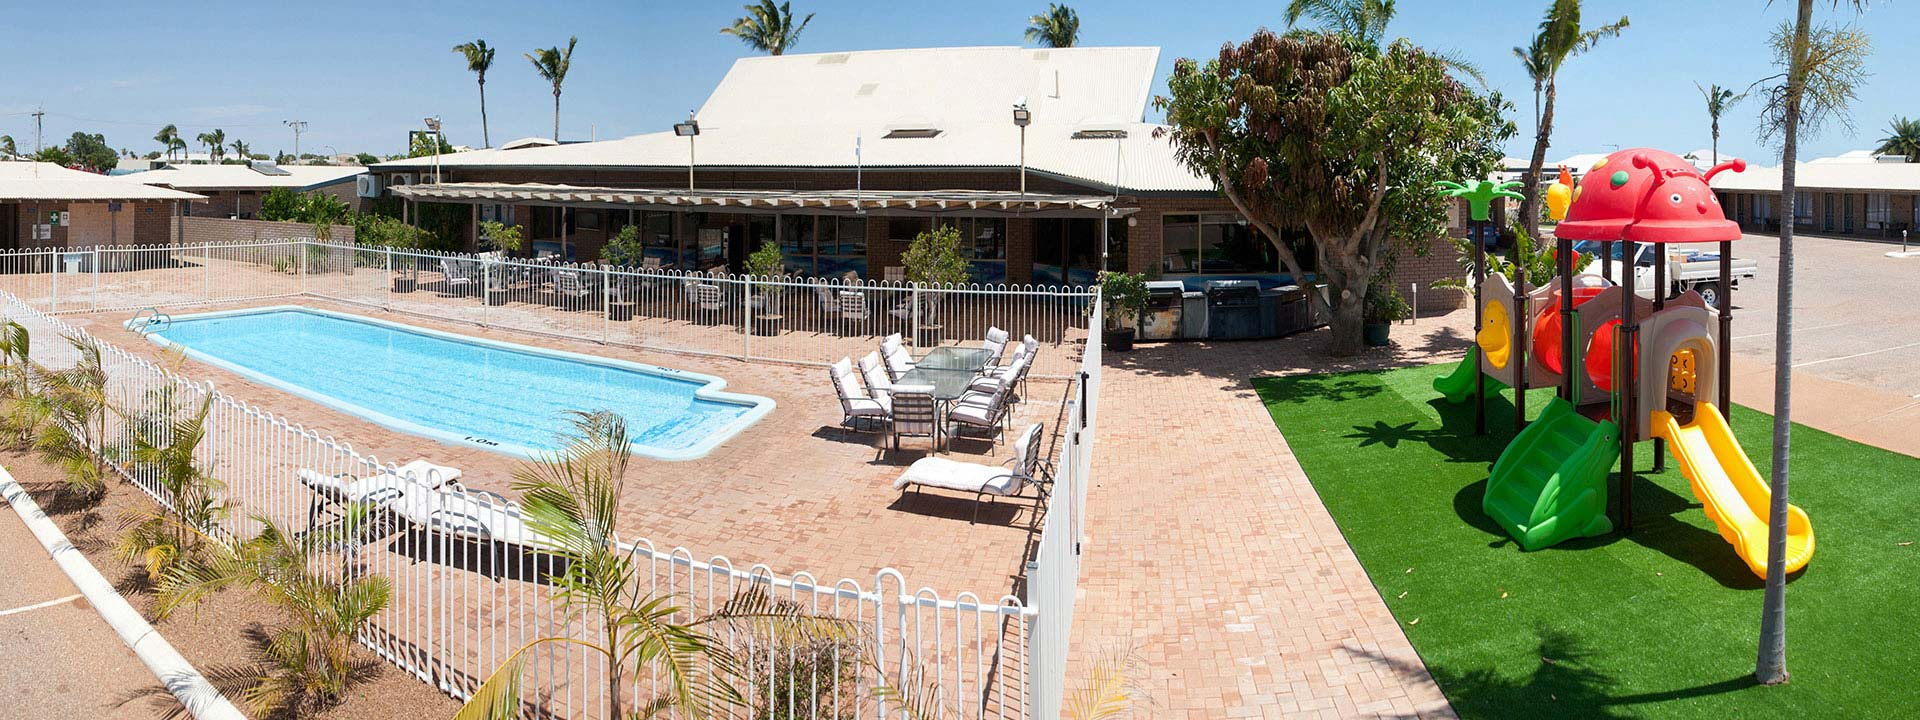 Enjoy the amazing facilities at Carnarvon Motel